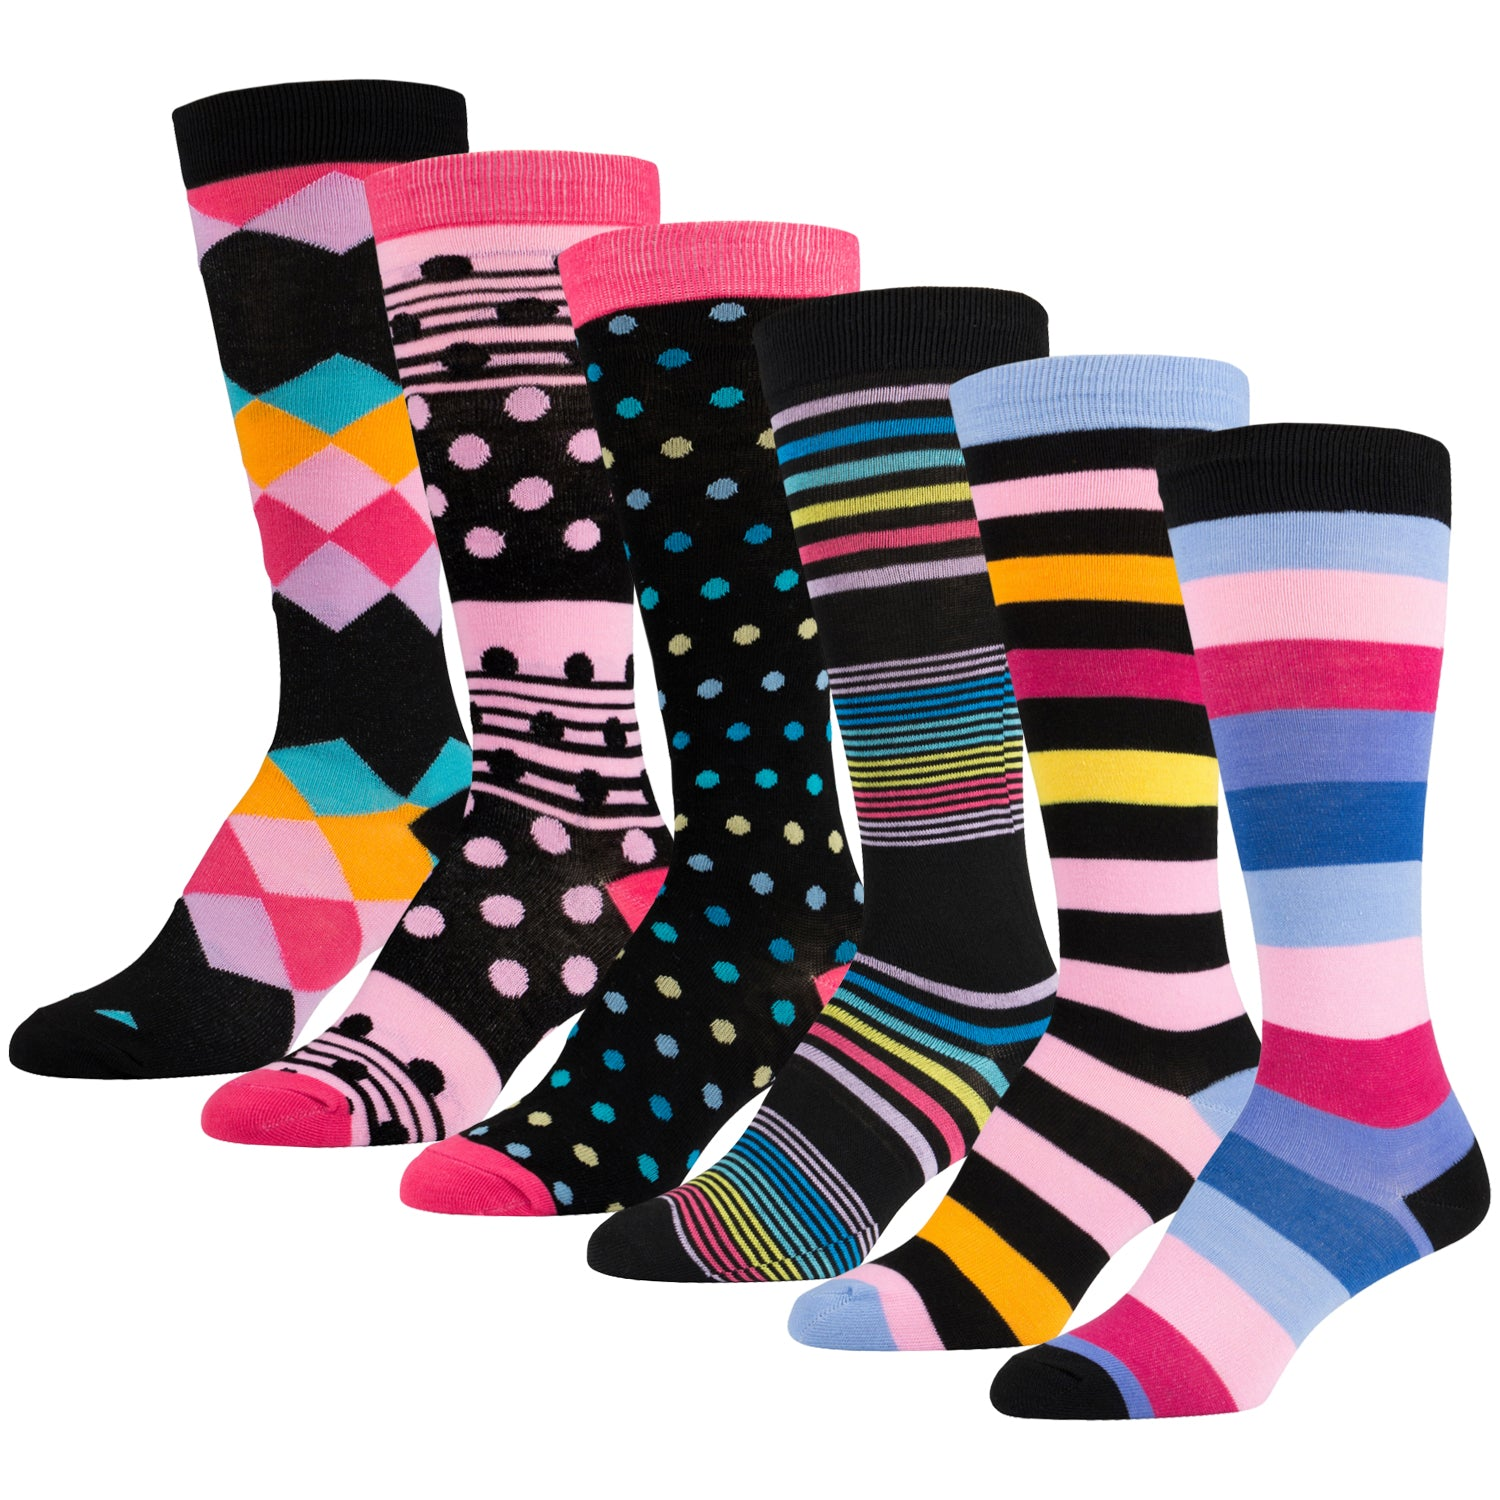 6 Pairs of Fancy Designed Colorful Knee High Socks Striped and Dotted